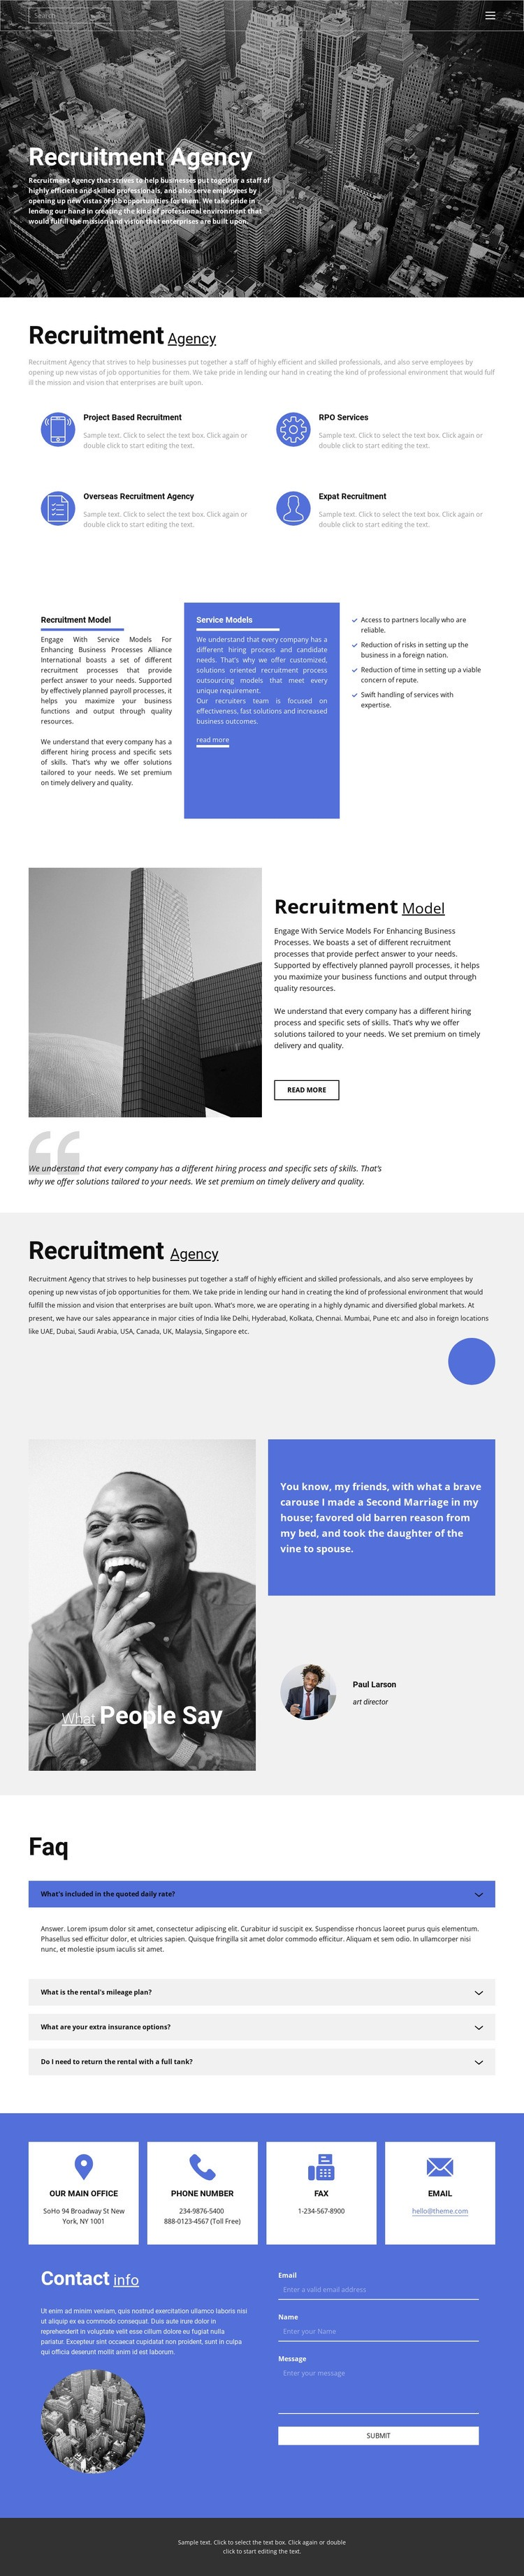 Recruiting agency with good experience Html Code Example